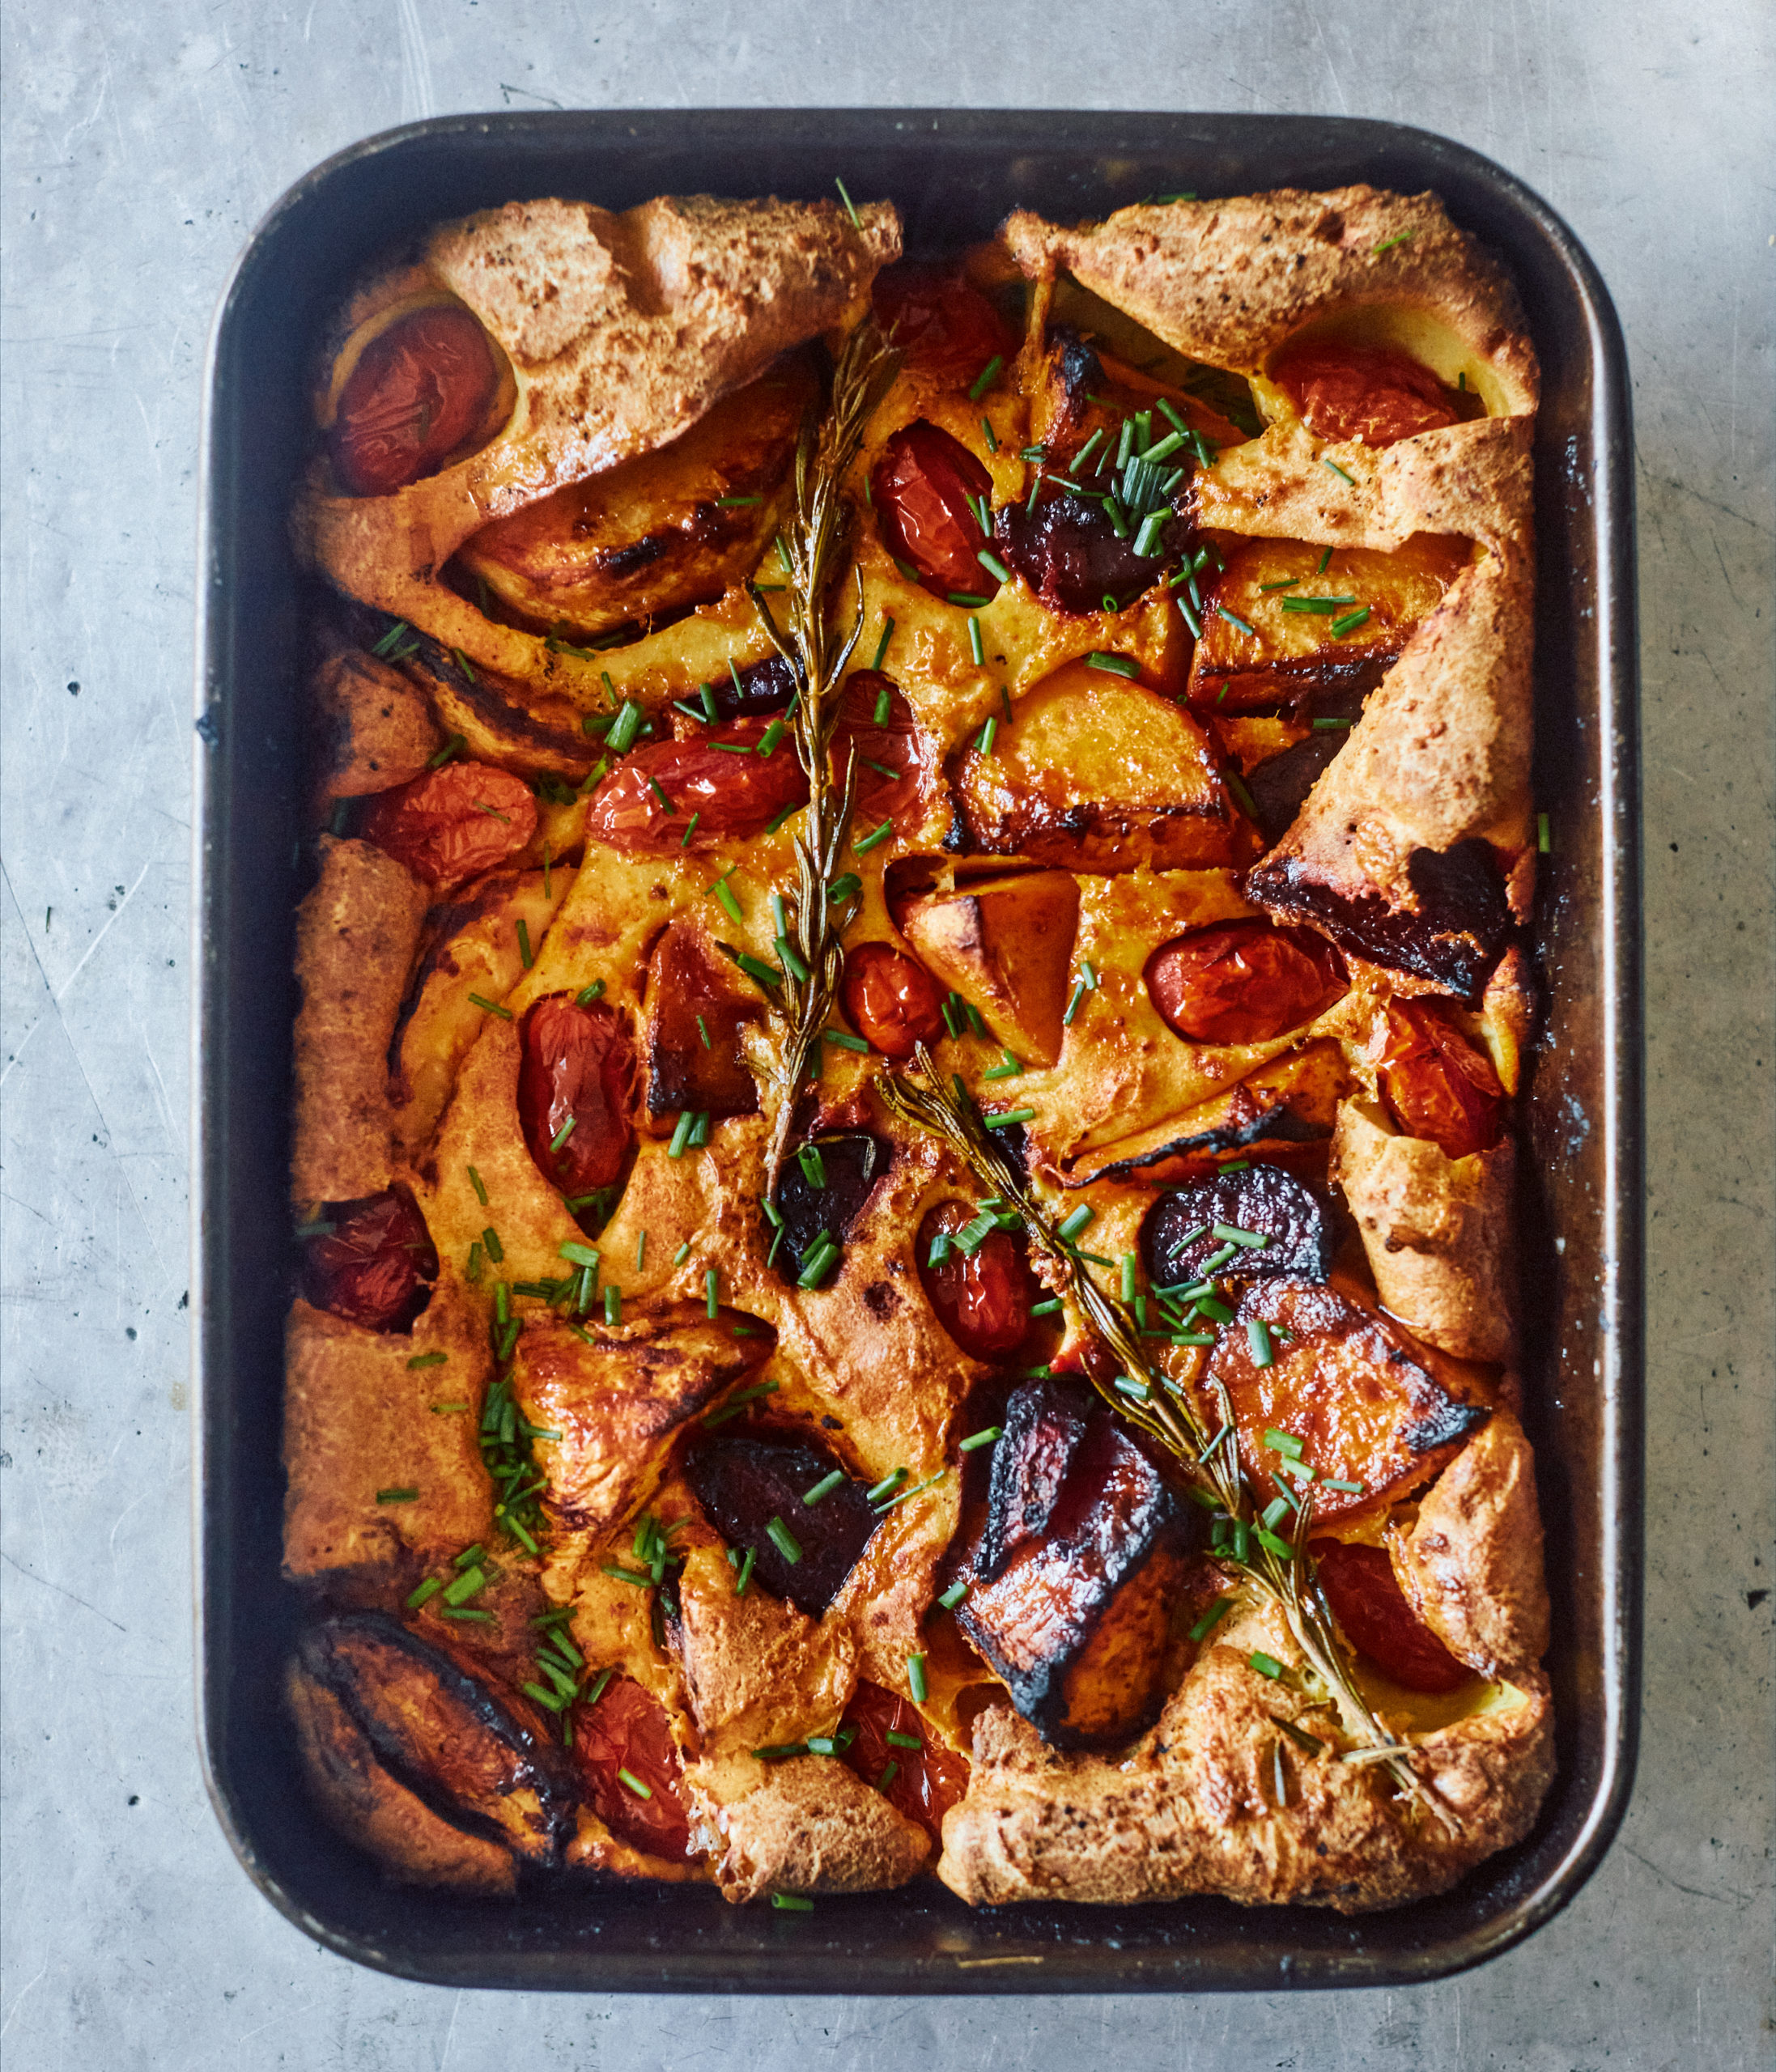 ottolenghi vegetarian toad-in-the-hole